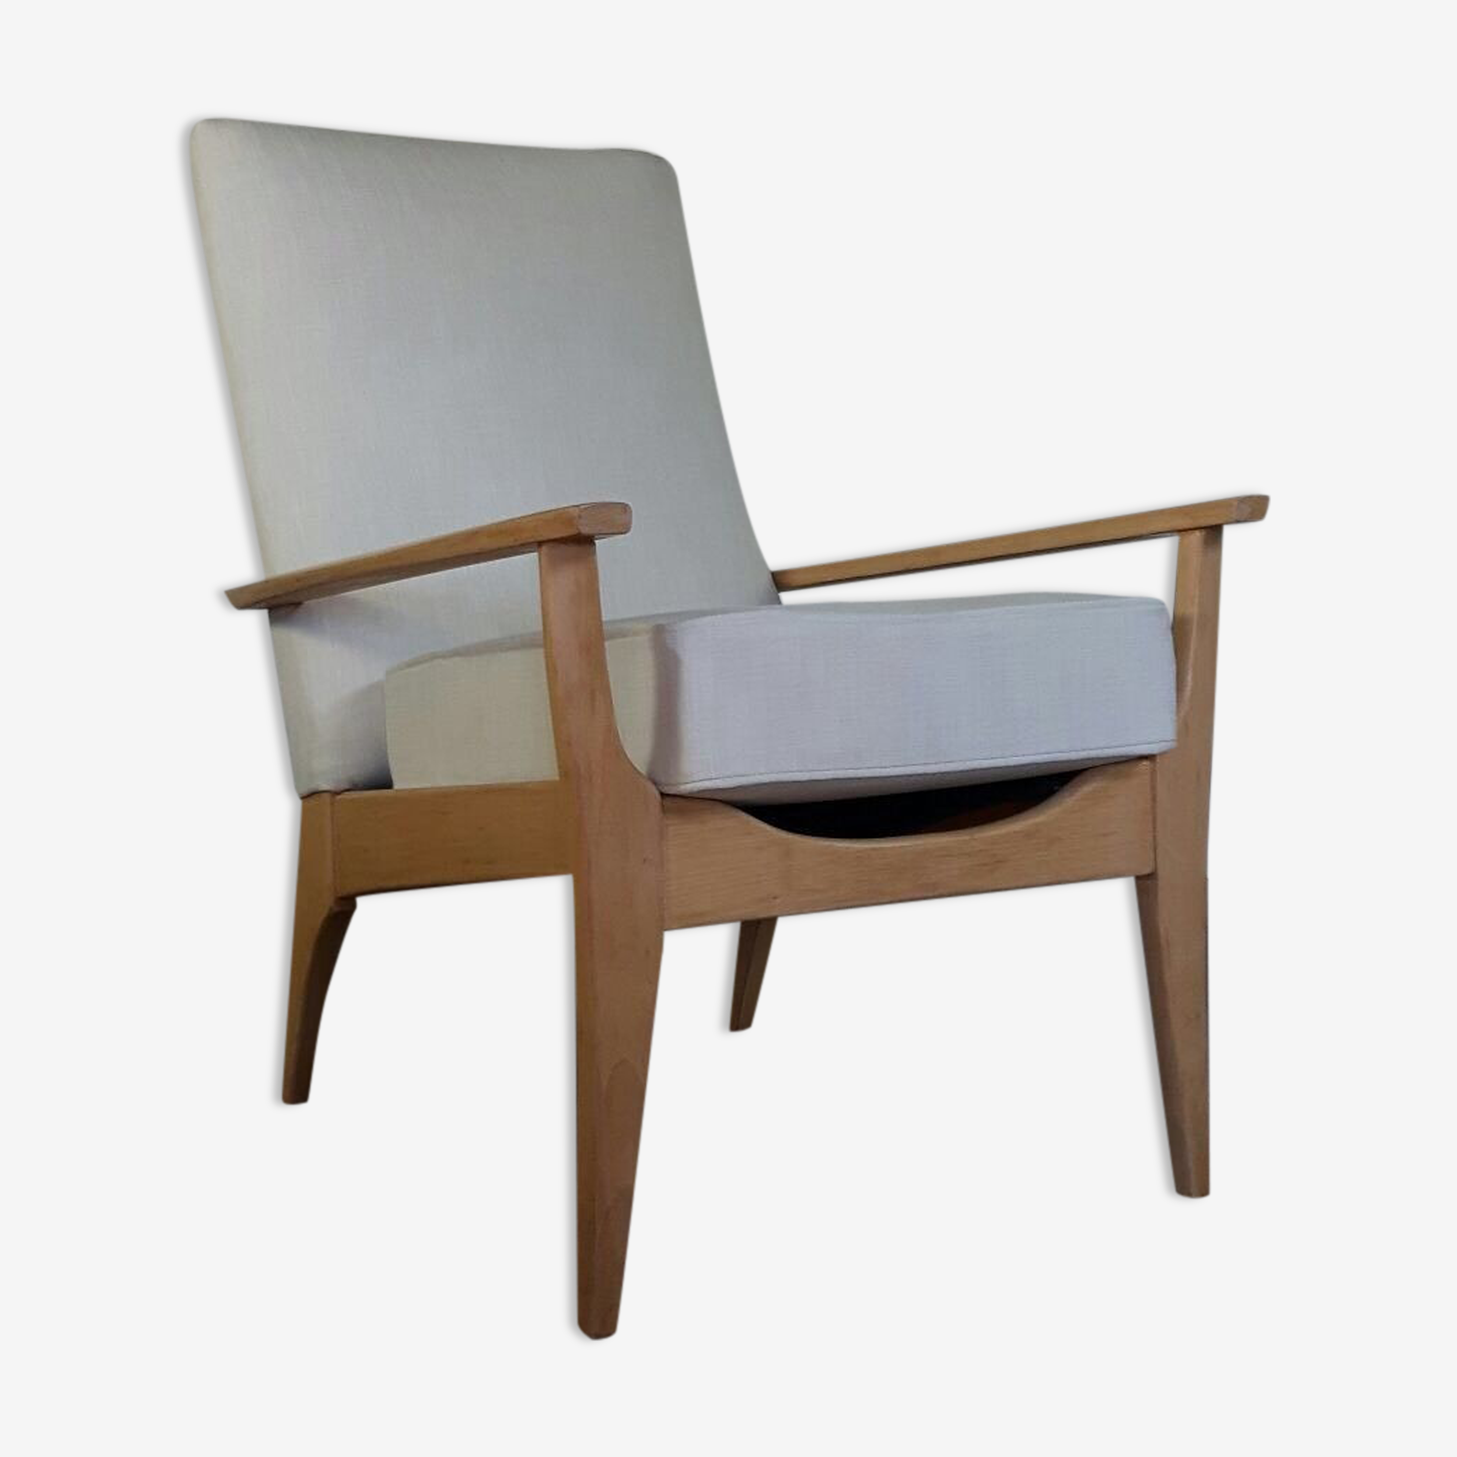 Danish armchair Toothill